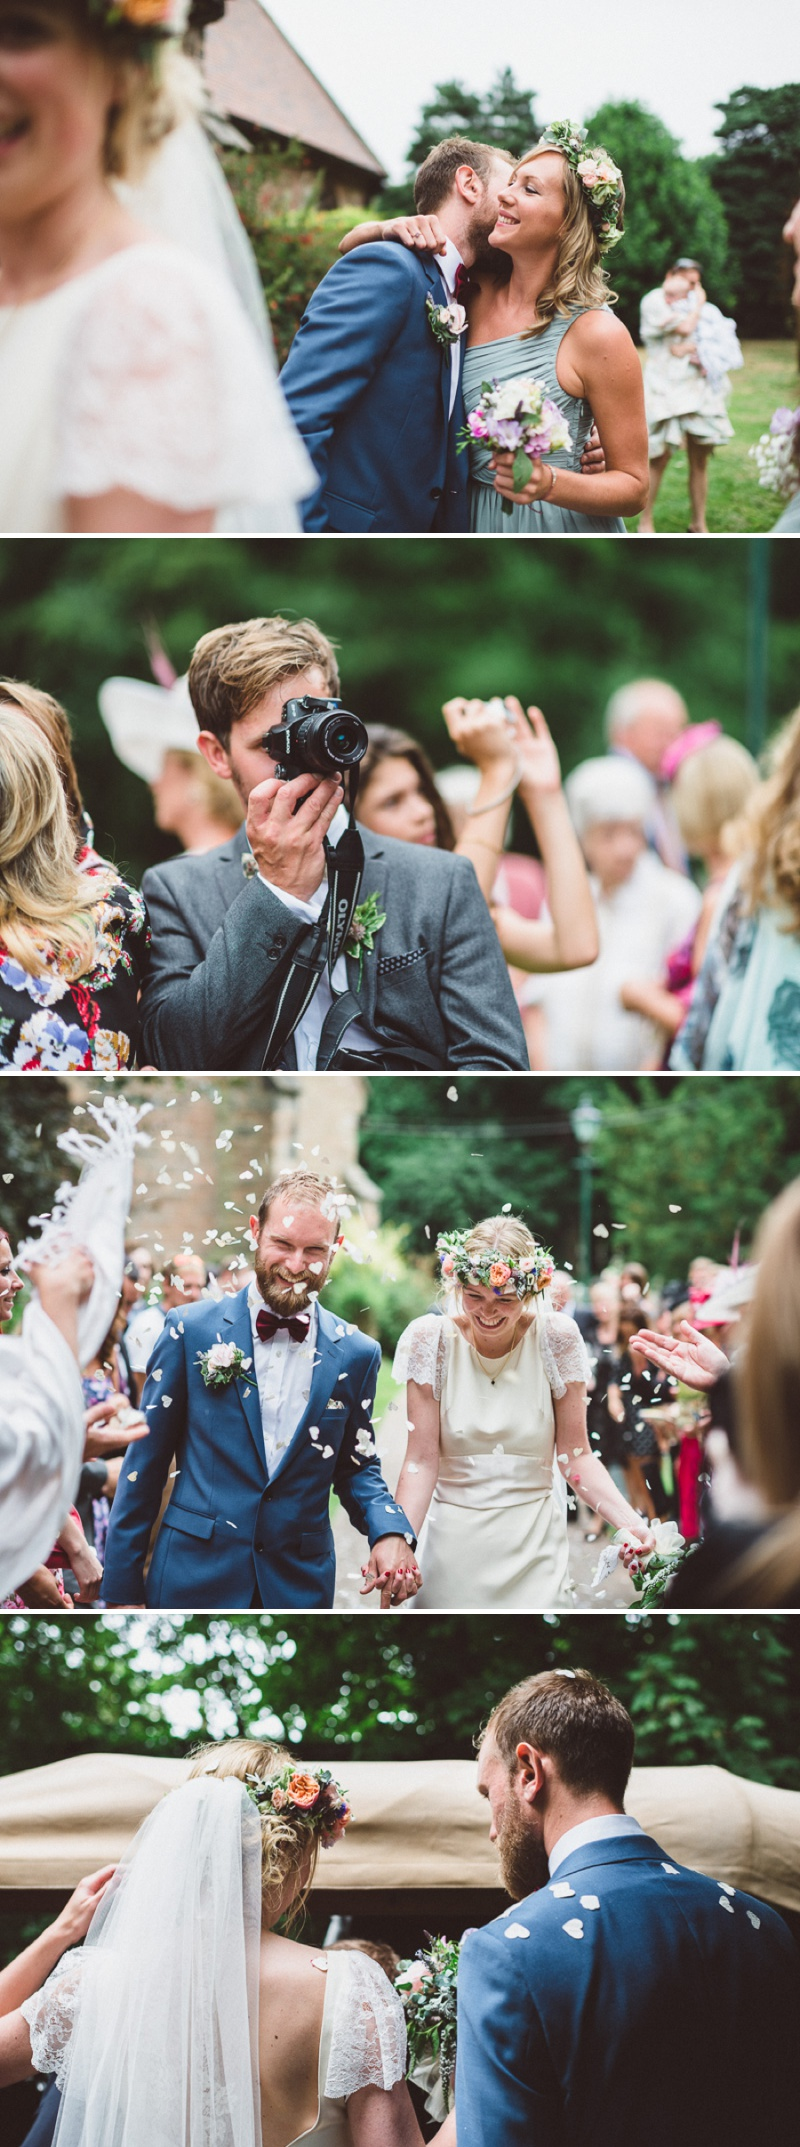 A Beautiful Bohemian Back Garden English Wedding With A Silk Charlie Brear Dress With Lace Cap Sleeves And Flower Crowns From Rhys Parker Photography._0010